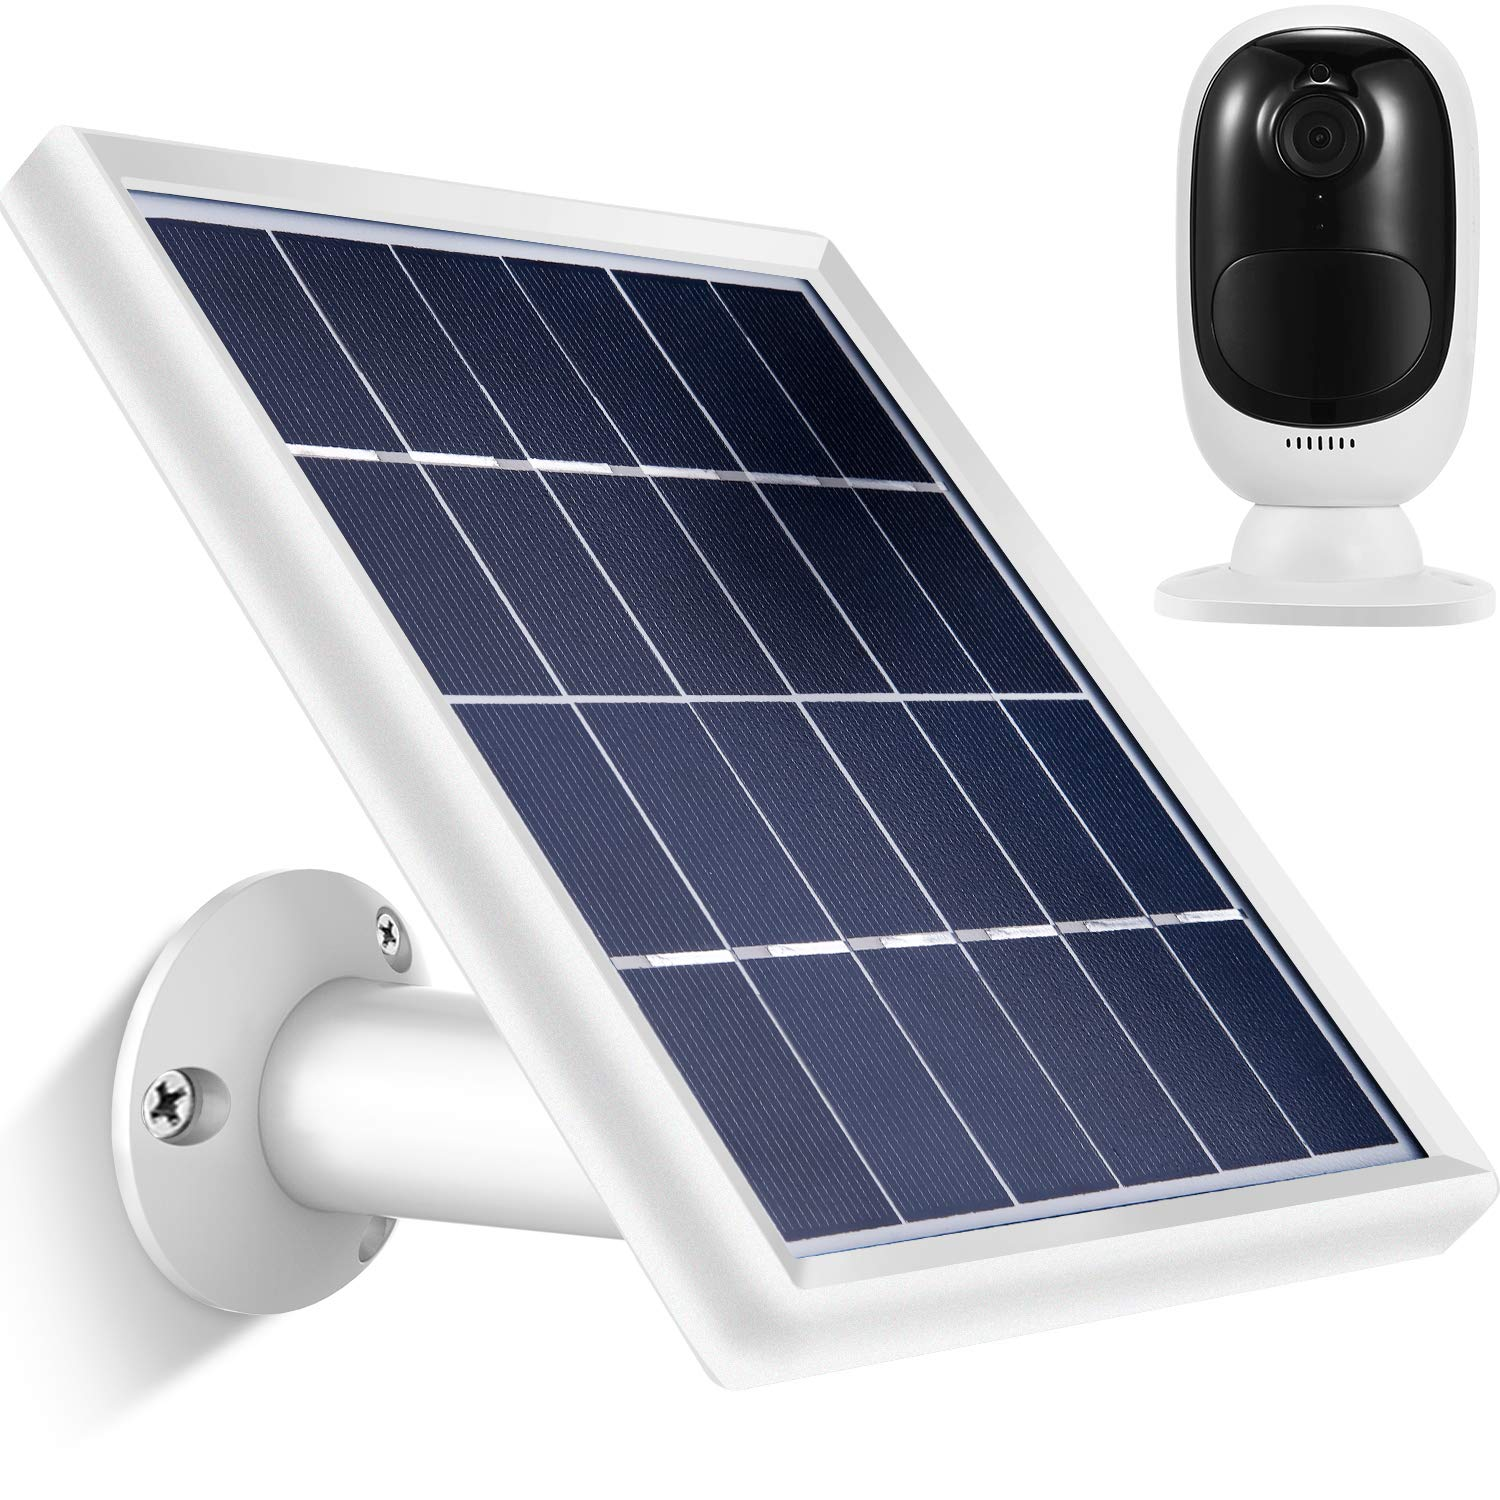 Solar Panel compatible with Reolink Go, Reolink Argus 2, Reolink Argus Pro (Camera not included), Weather Resistant, 5 m/ 16.4 ft Power Cable and 360 Degree Mount Bracket, 5 V/ 3.5 W (Max) (Black) Bememo